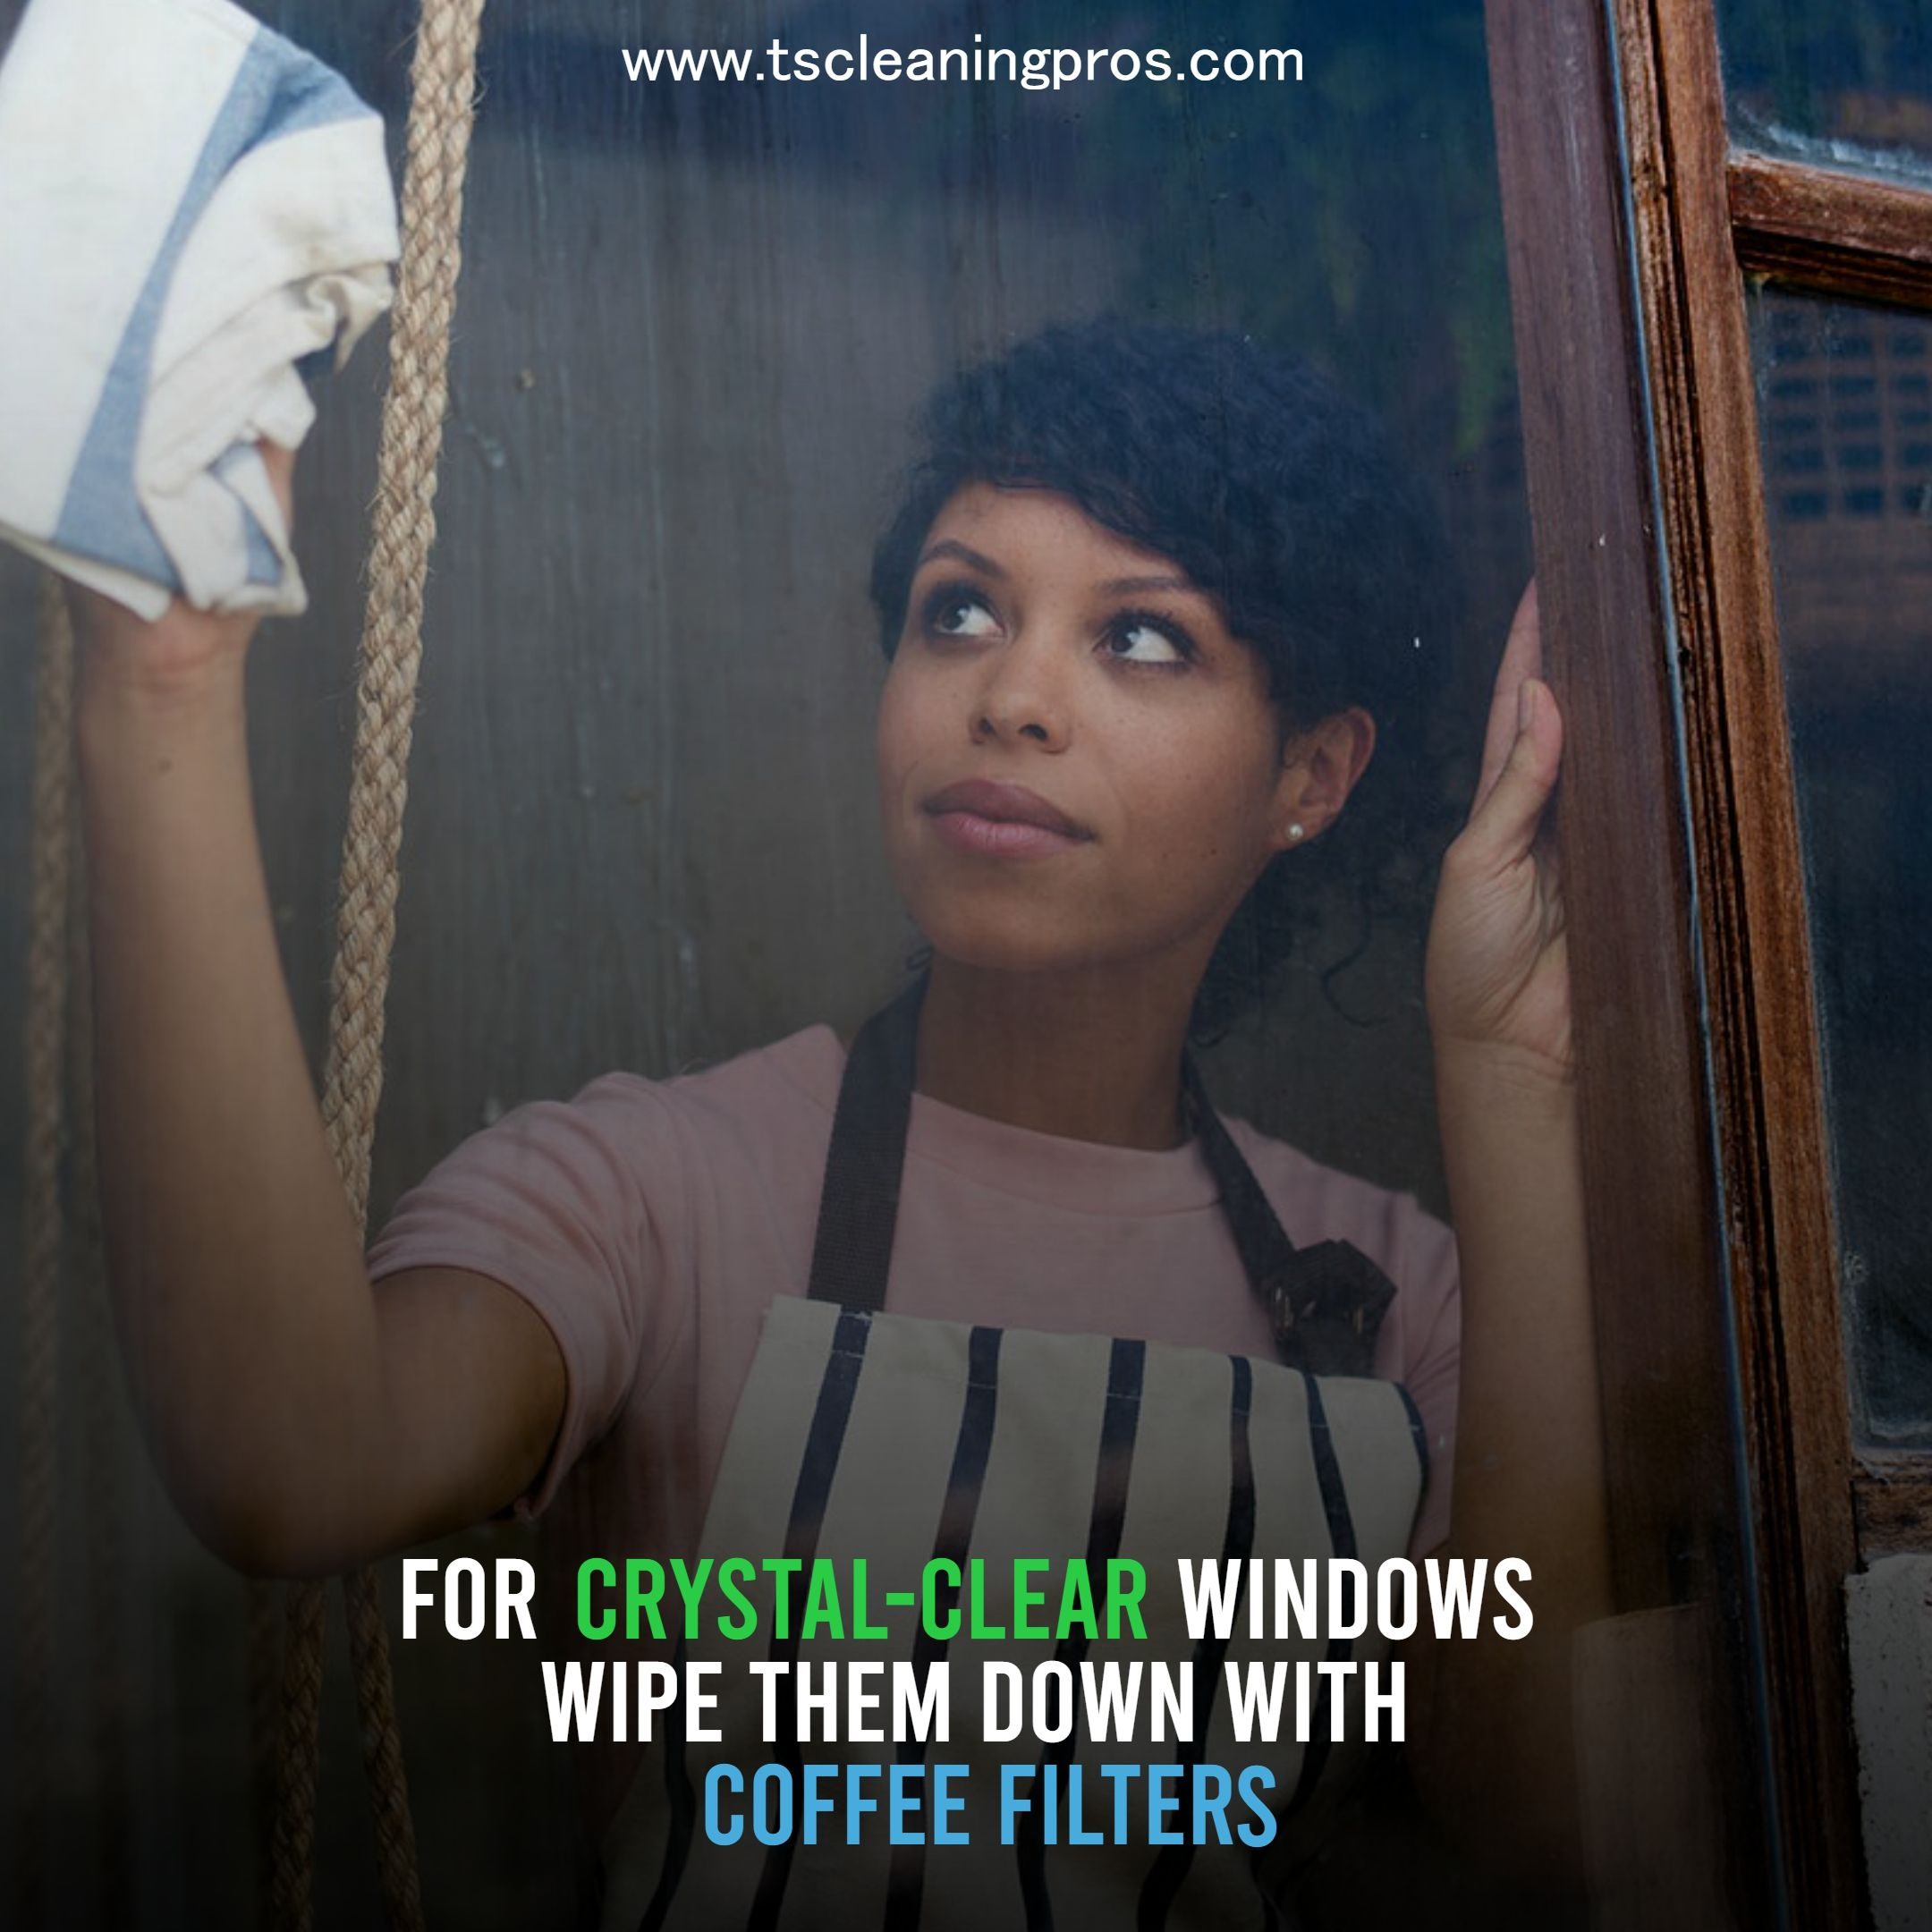 For Crystal Clear Windows Wipe Them Down With Coffee Filters Sneakpeak Cleaningmotivation Cleaninghouse Cl Clean House Cleaning Motivation Maid Service